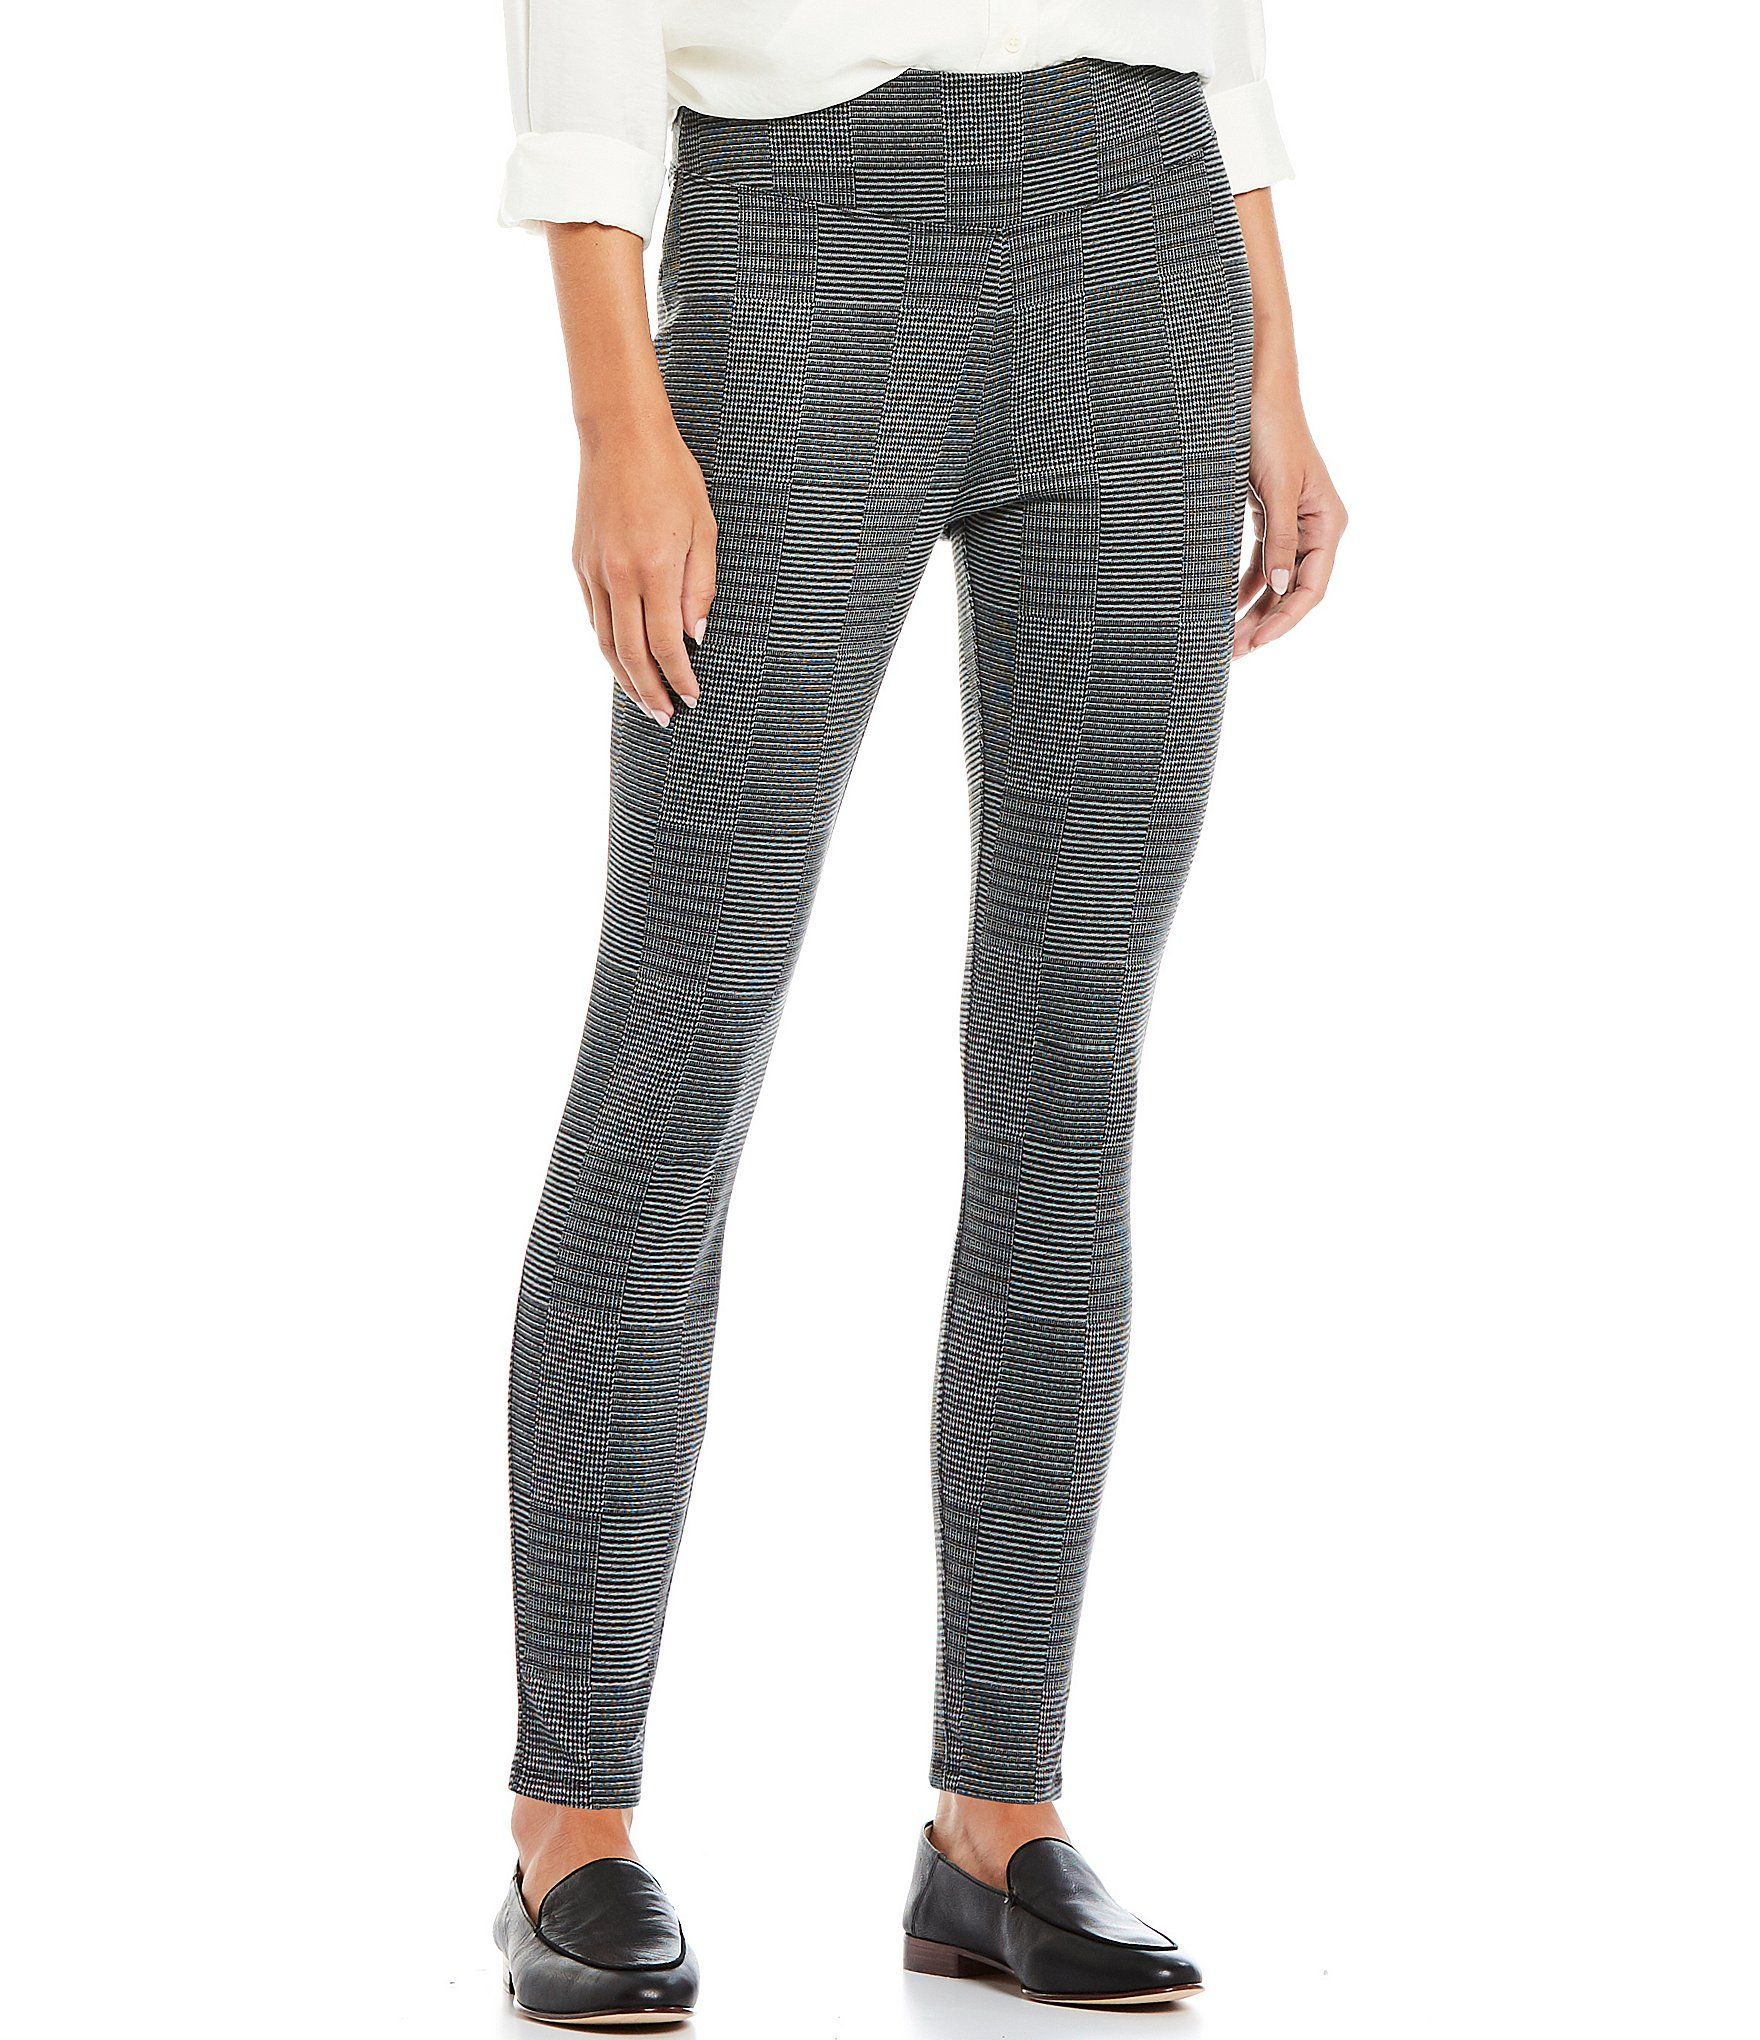 Westbound Patchwork Stripe Leggings - Grey Patchwork M #stripedleggings